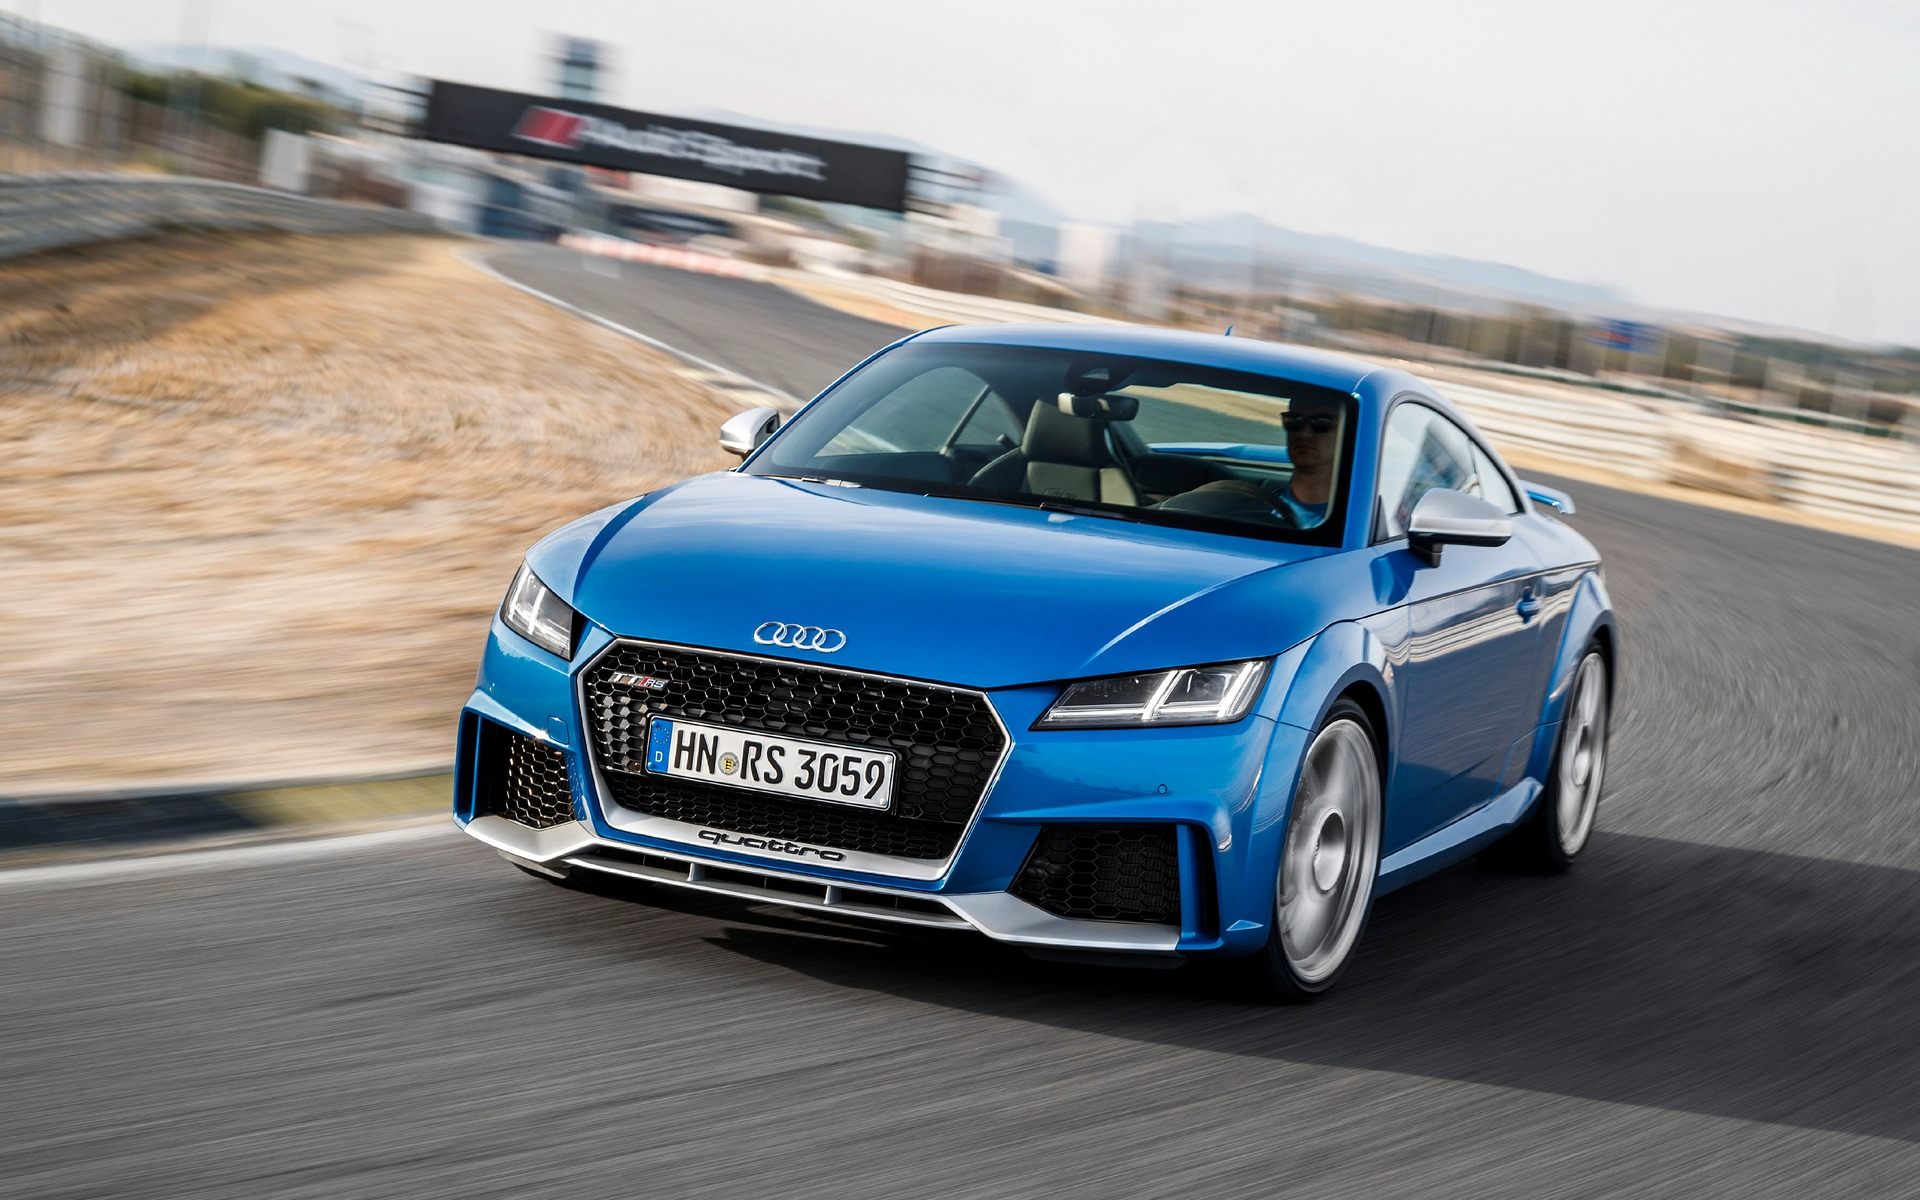 2018 Audi Tt Rs We Re Driving It On The Track This Week The Car Guide